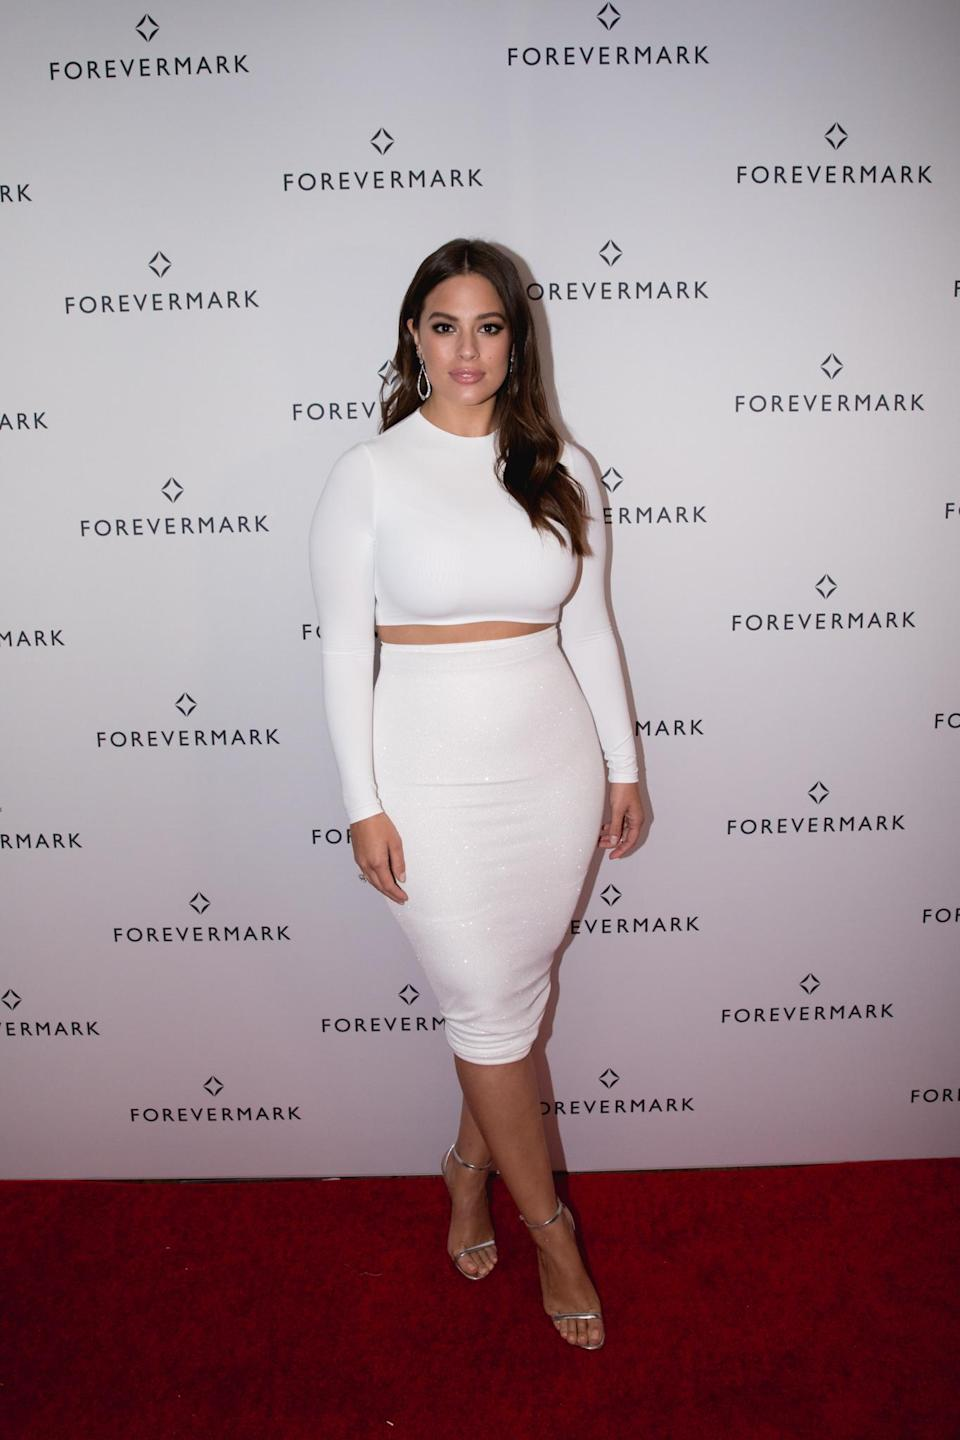 Ashley Graham at Forevermark Tribute Event in Manhattan. (Photo: Courtesy of Forevermark)